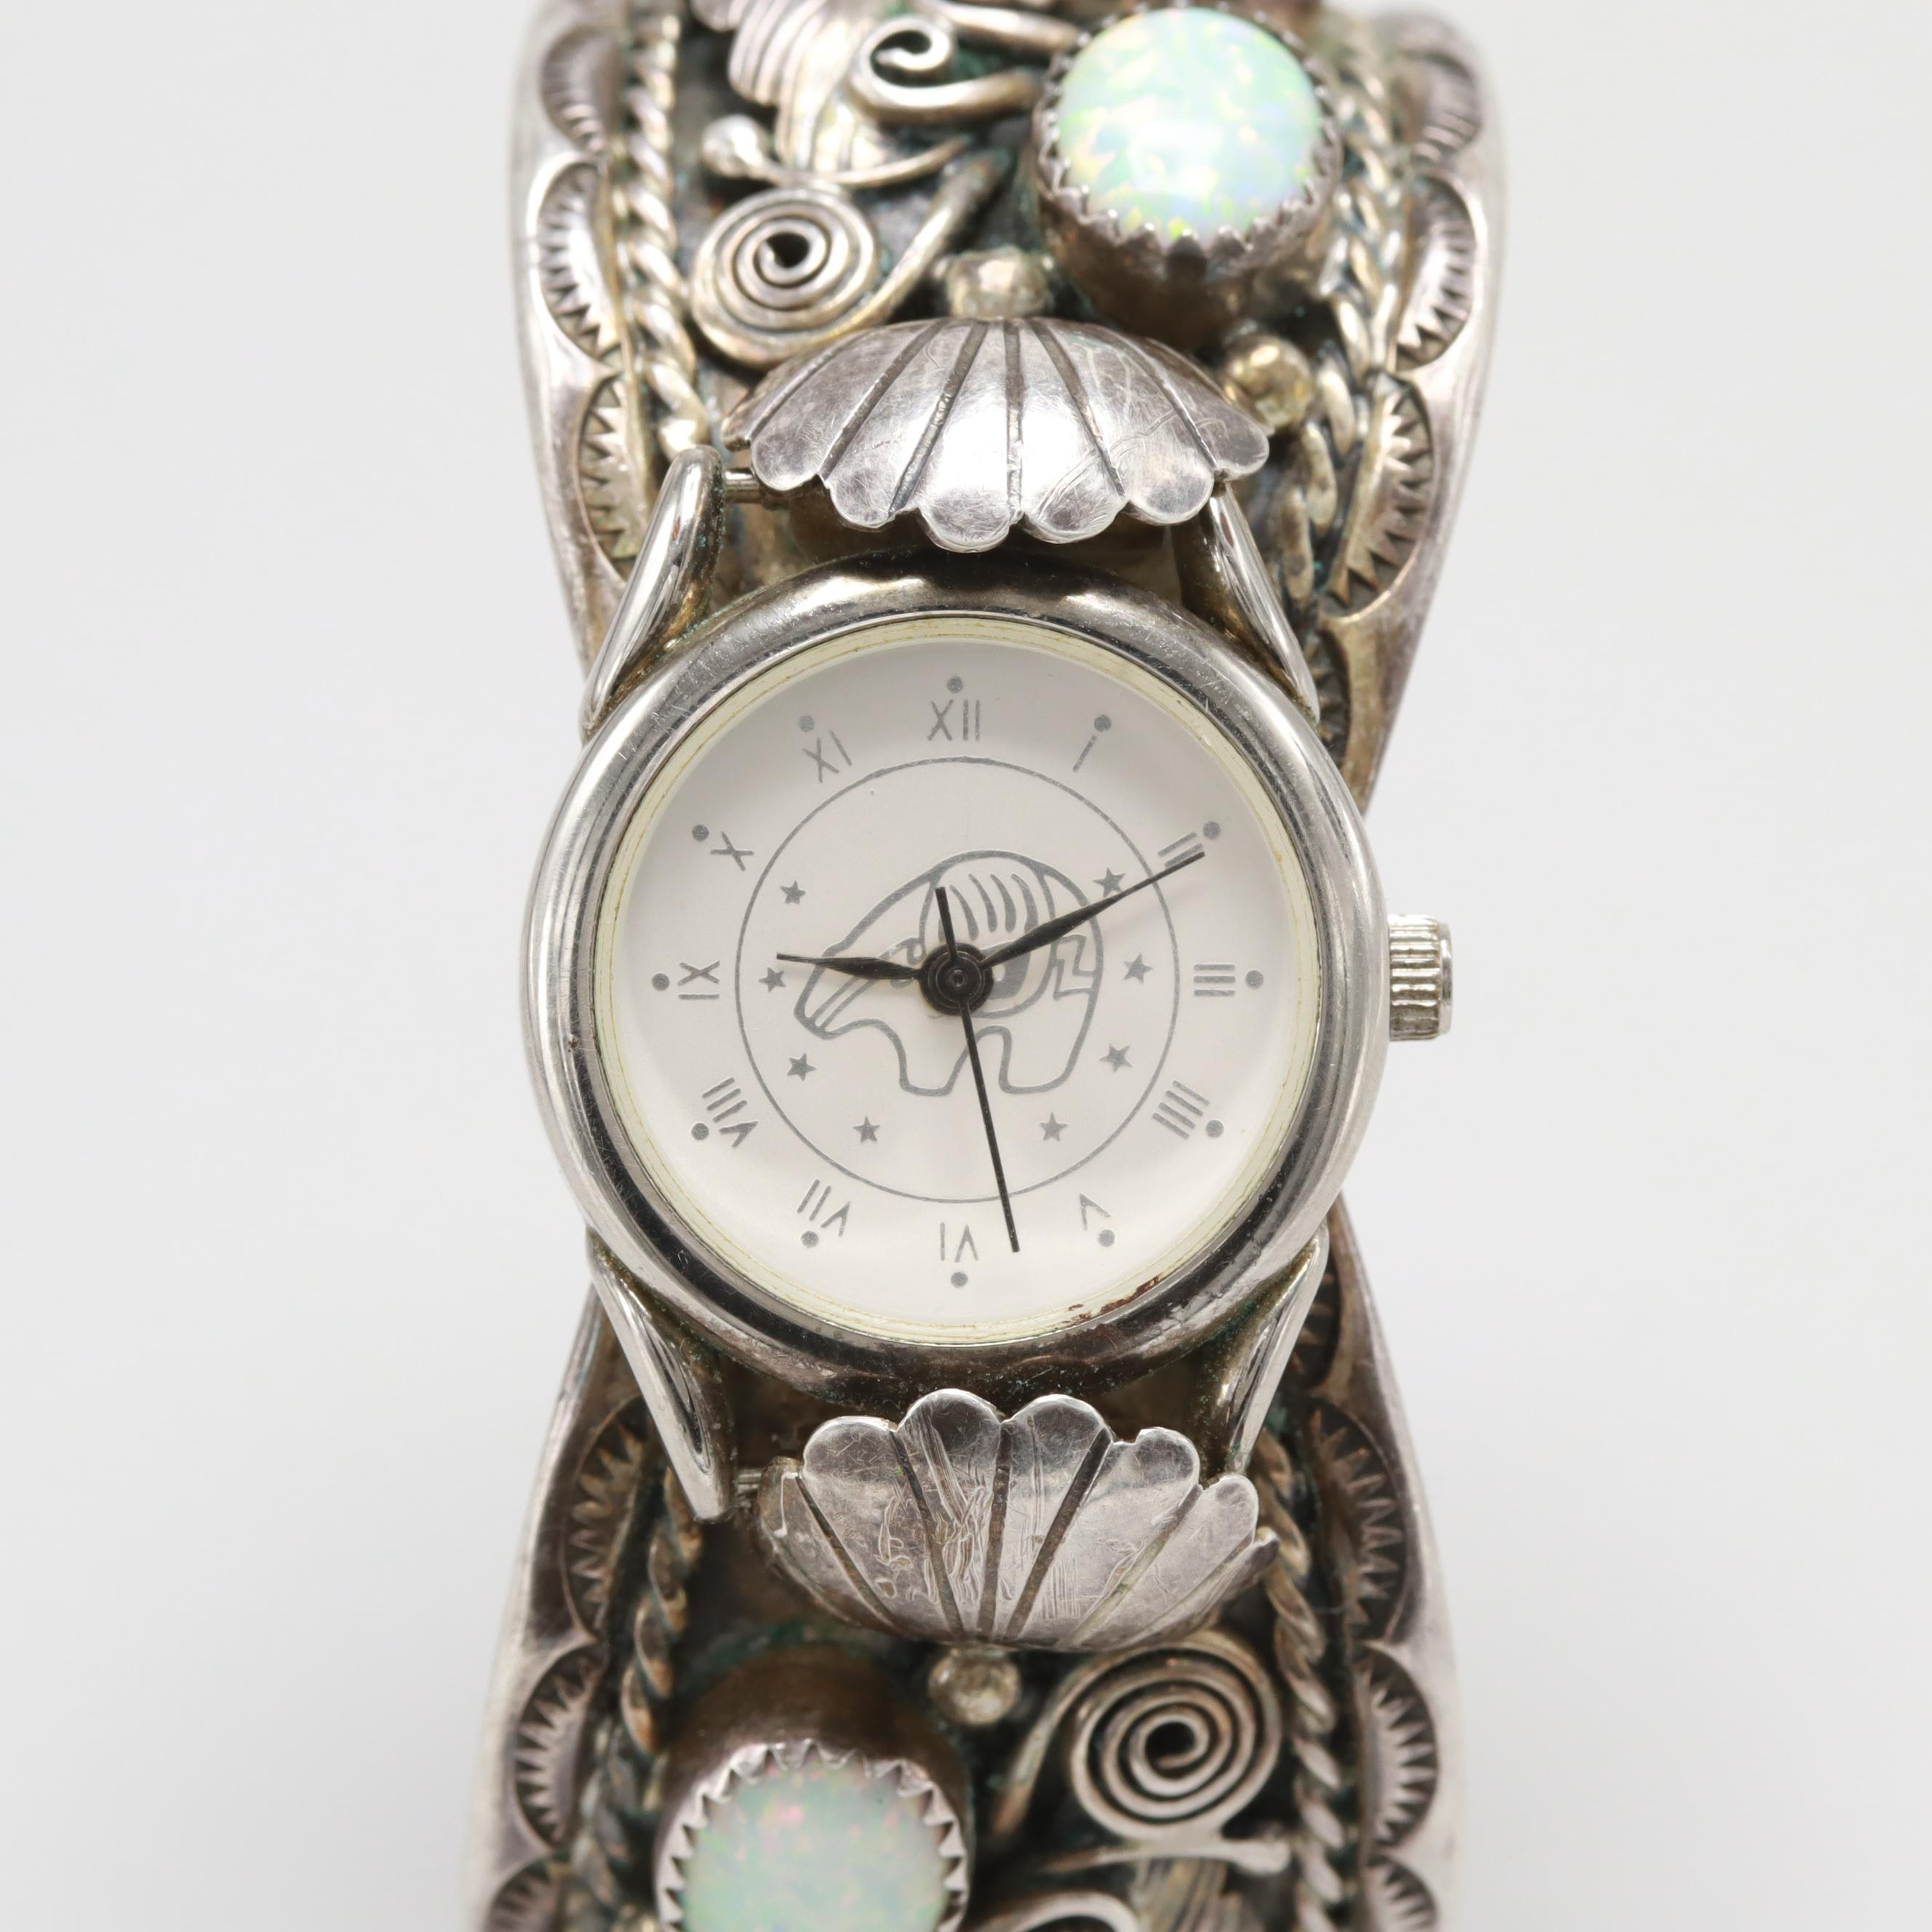 Navajo Diné Quartz Wristwatch With Sterling Silver Synthetic Opal Cuff Bracelet